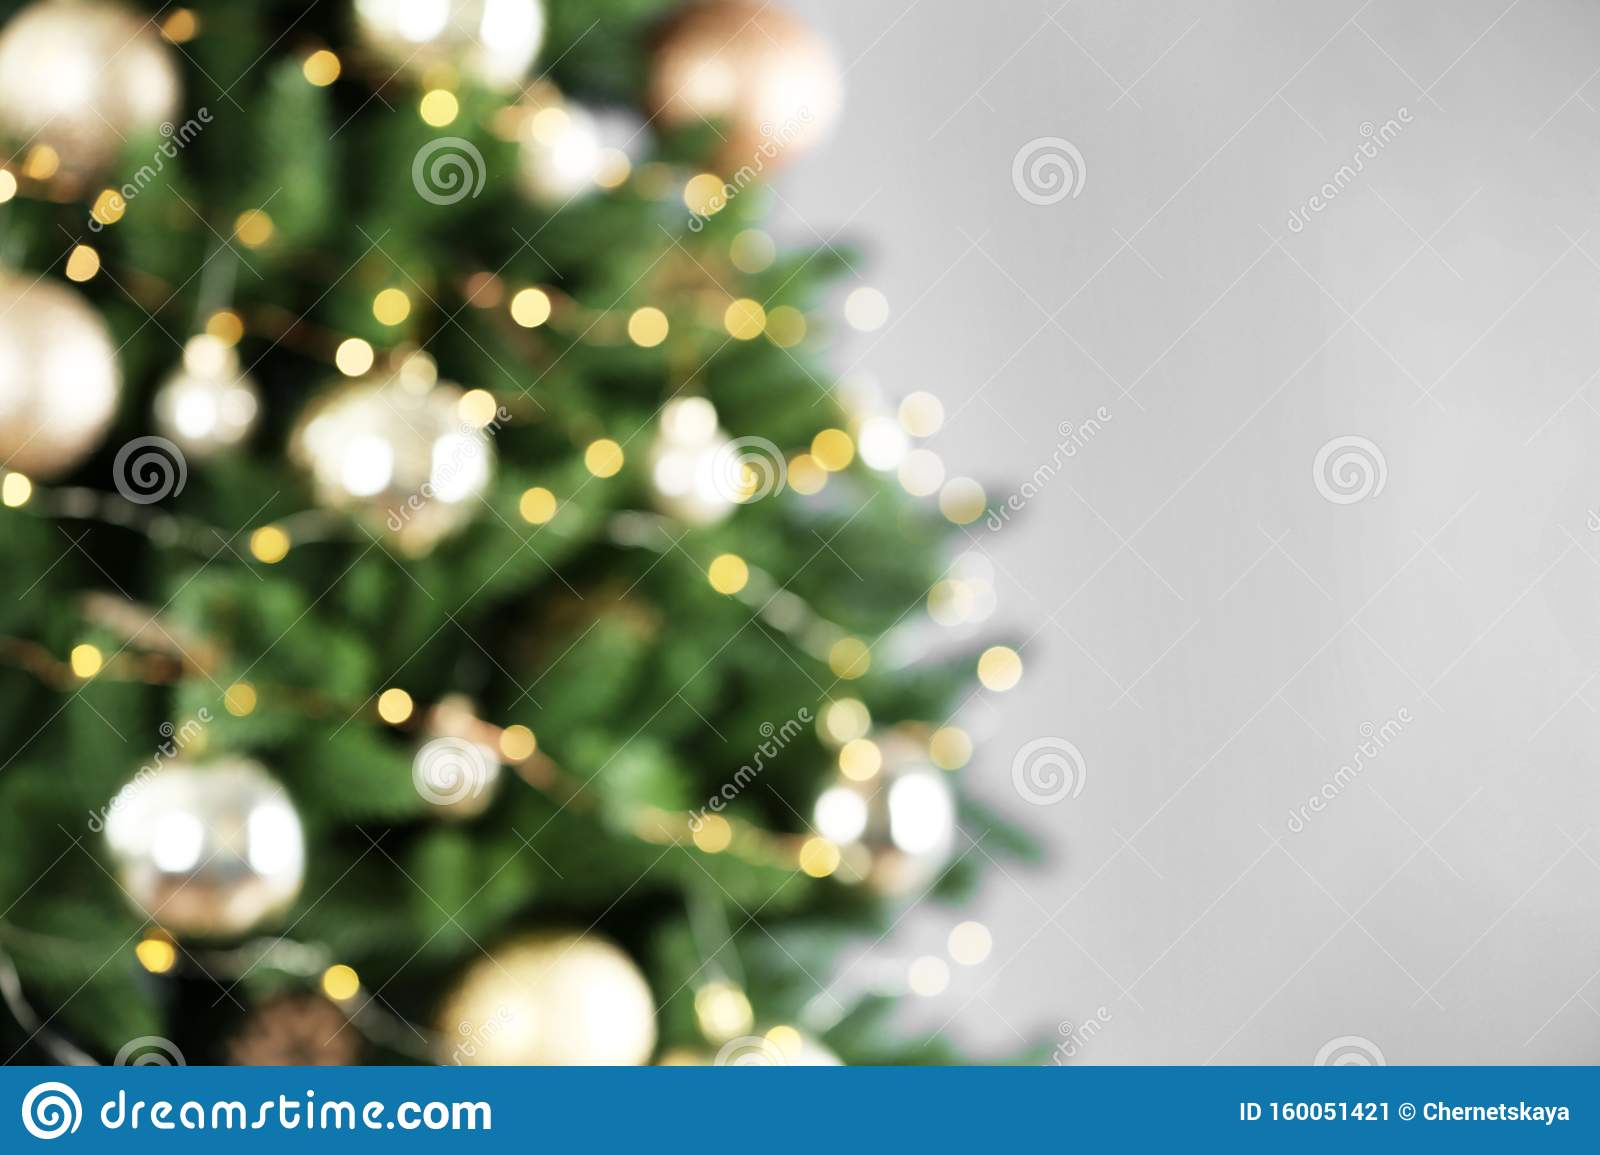 Beautiful Christmas tree with lights against grey background, blurred view